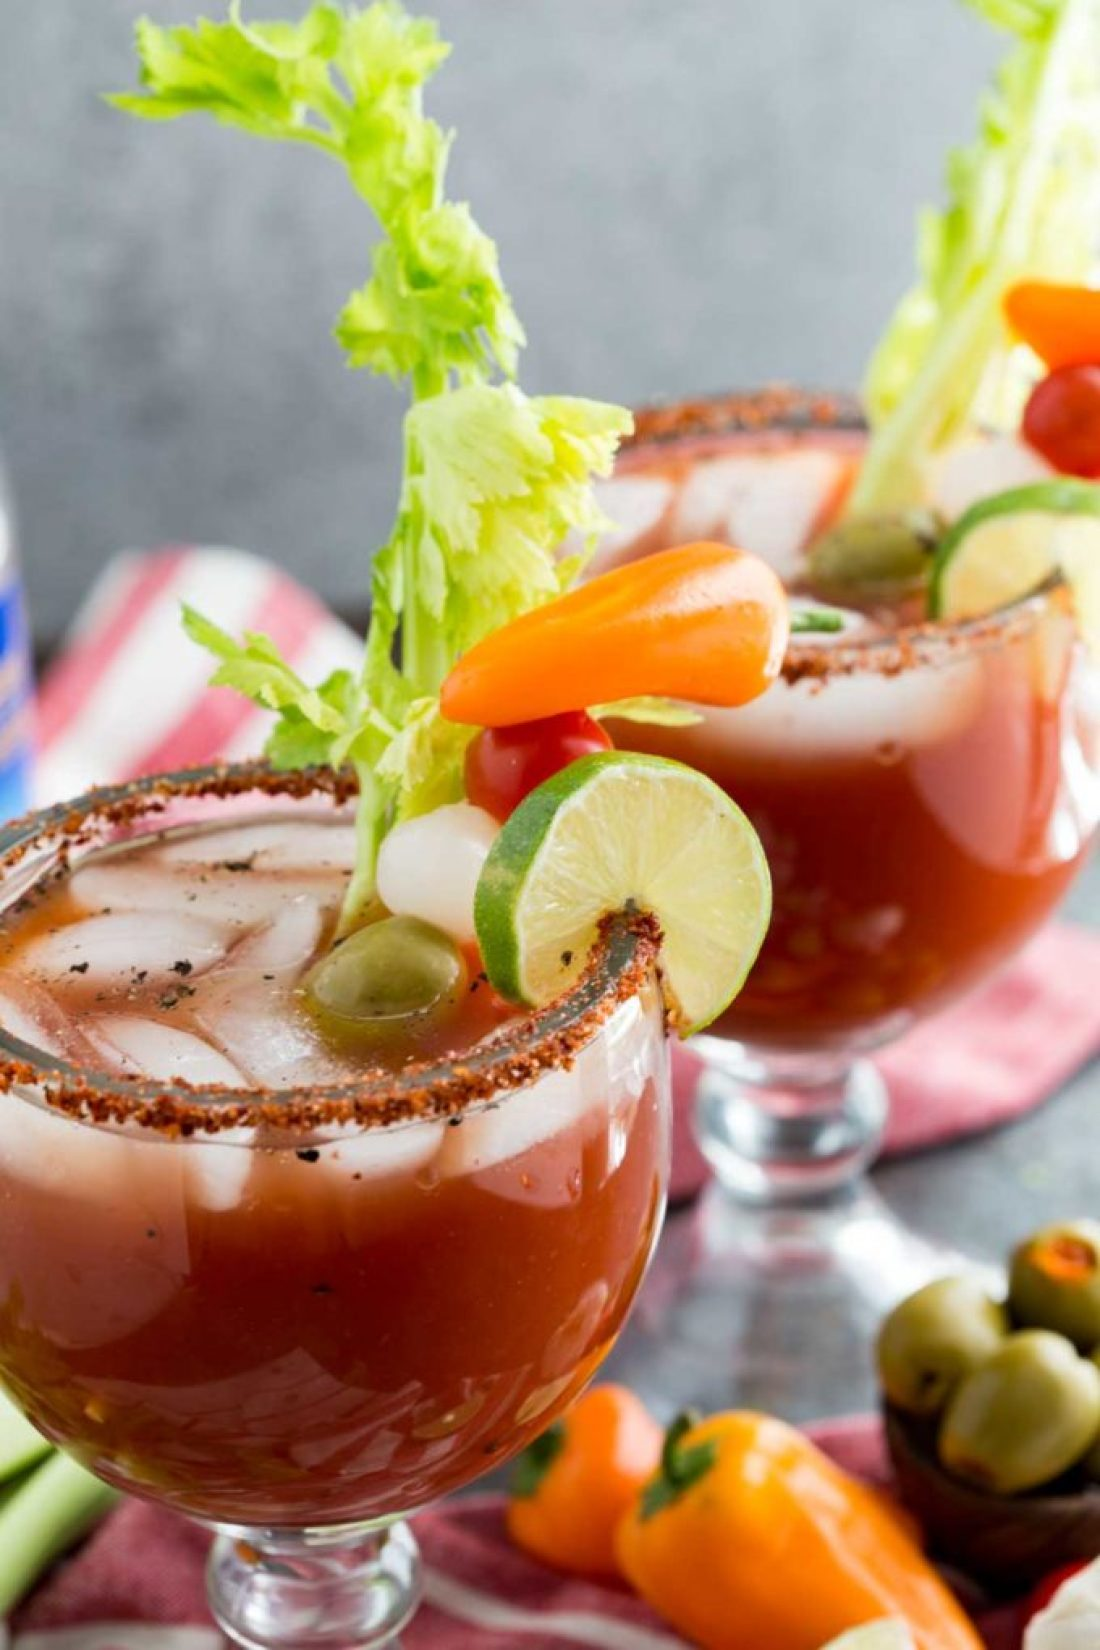 Best Michelada Recipe: Or, not so bloody mary. This is a spicy tomato based mocktail with bold flavors, and a fun kick perfect for eating alfresco with friends!